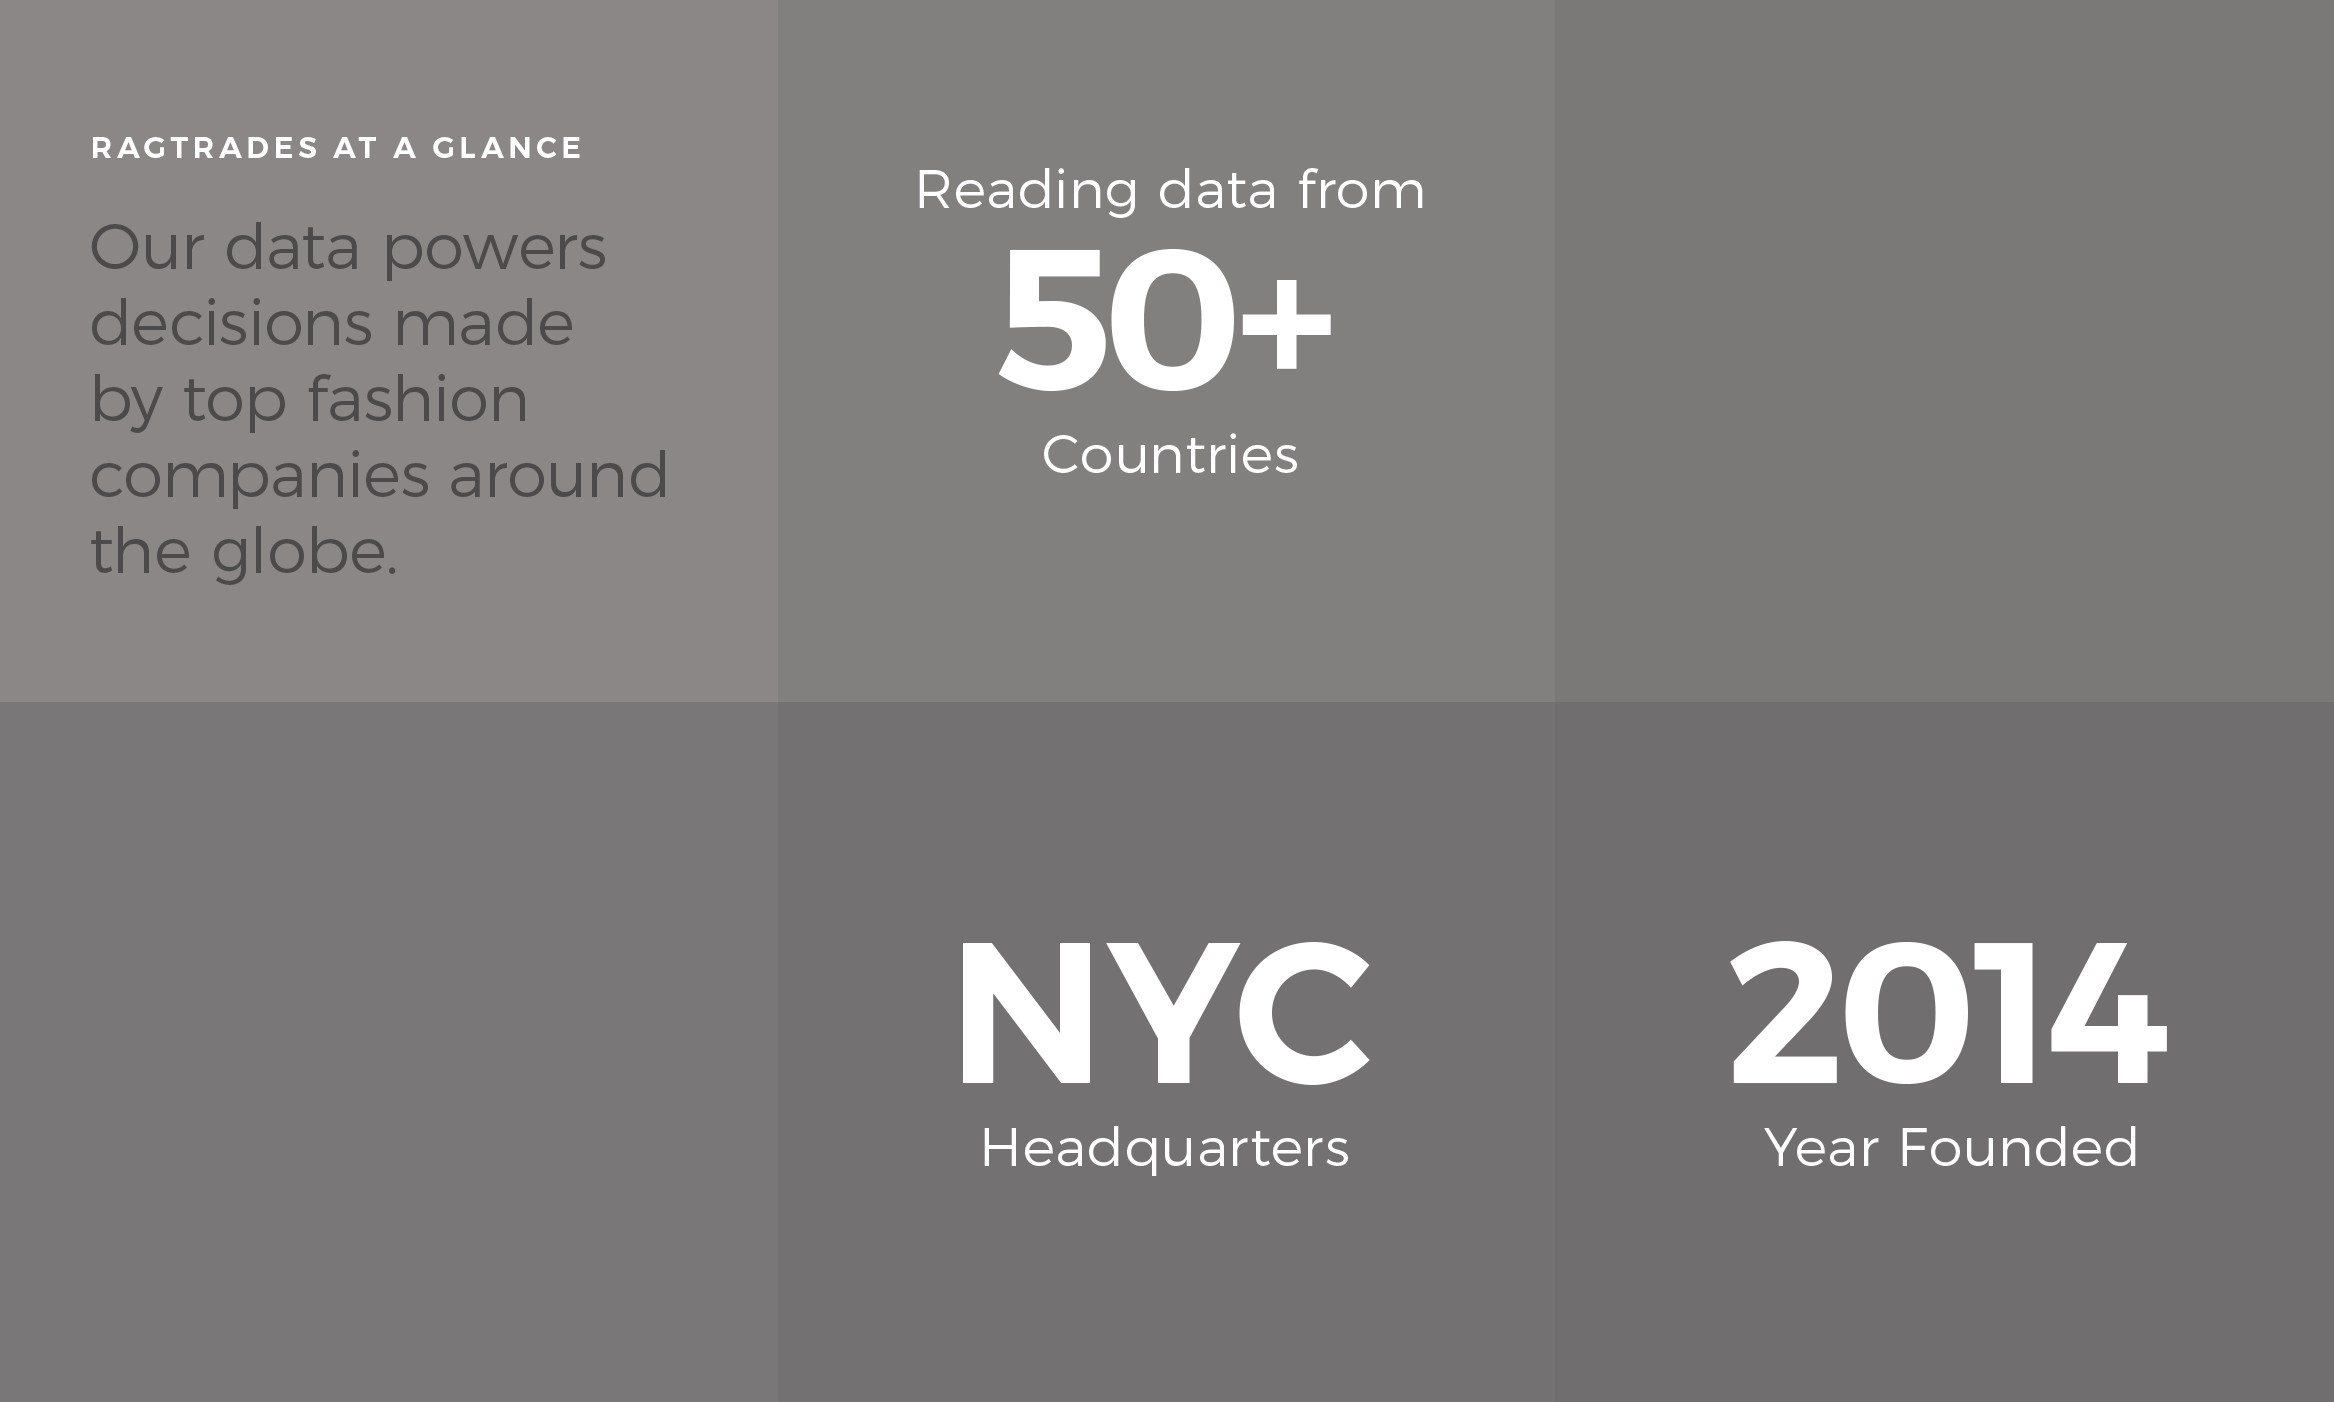 "Quick stats about Ragtrades ""At a Glance"". A caption reads ""Our data powers decisions made by top fashion companies around the globe."" Other captions include ""Reading data from 50+ countries"", ""NYC Headquarters"", and 2014: Year Founded""."